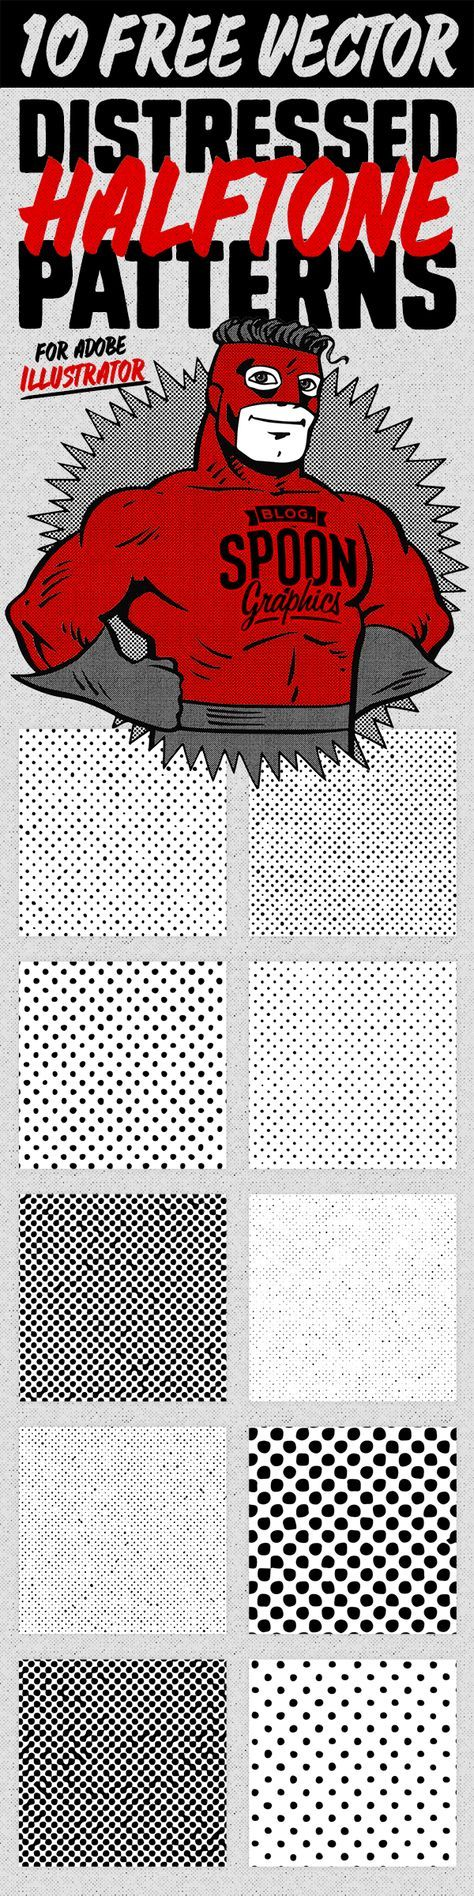 10 Free Distressed Vector Halftone Patterns